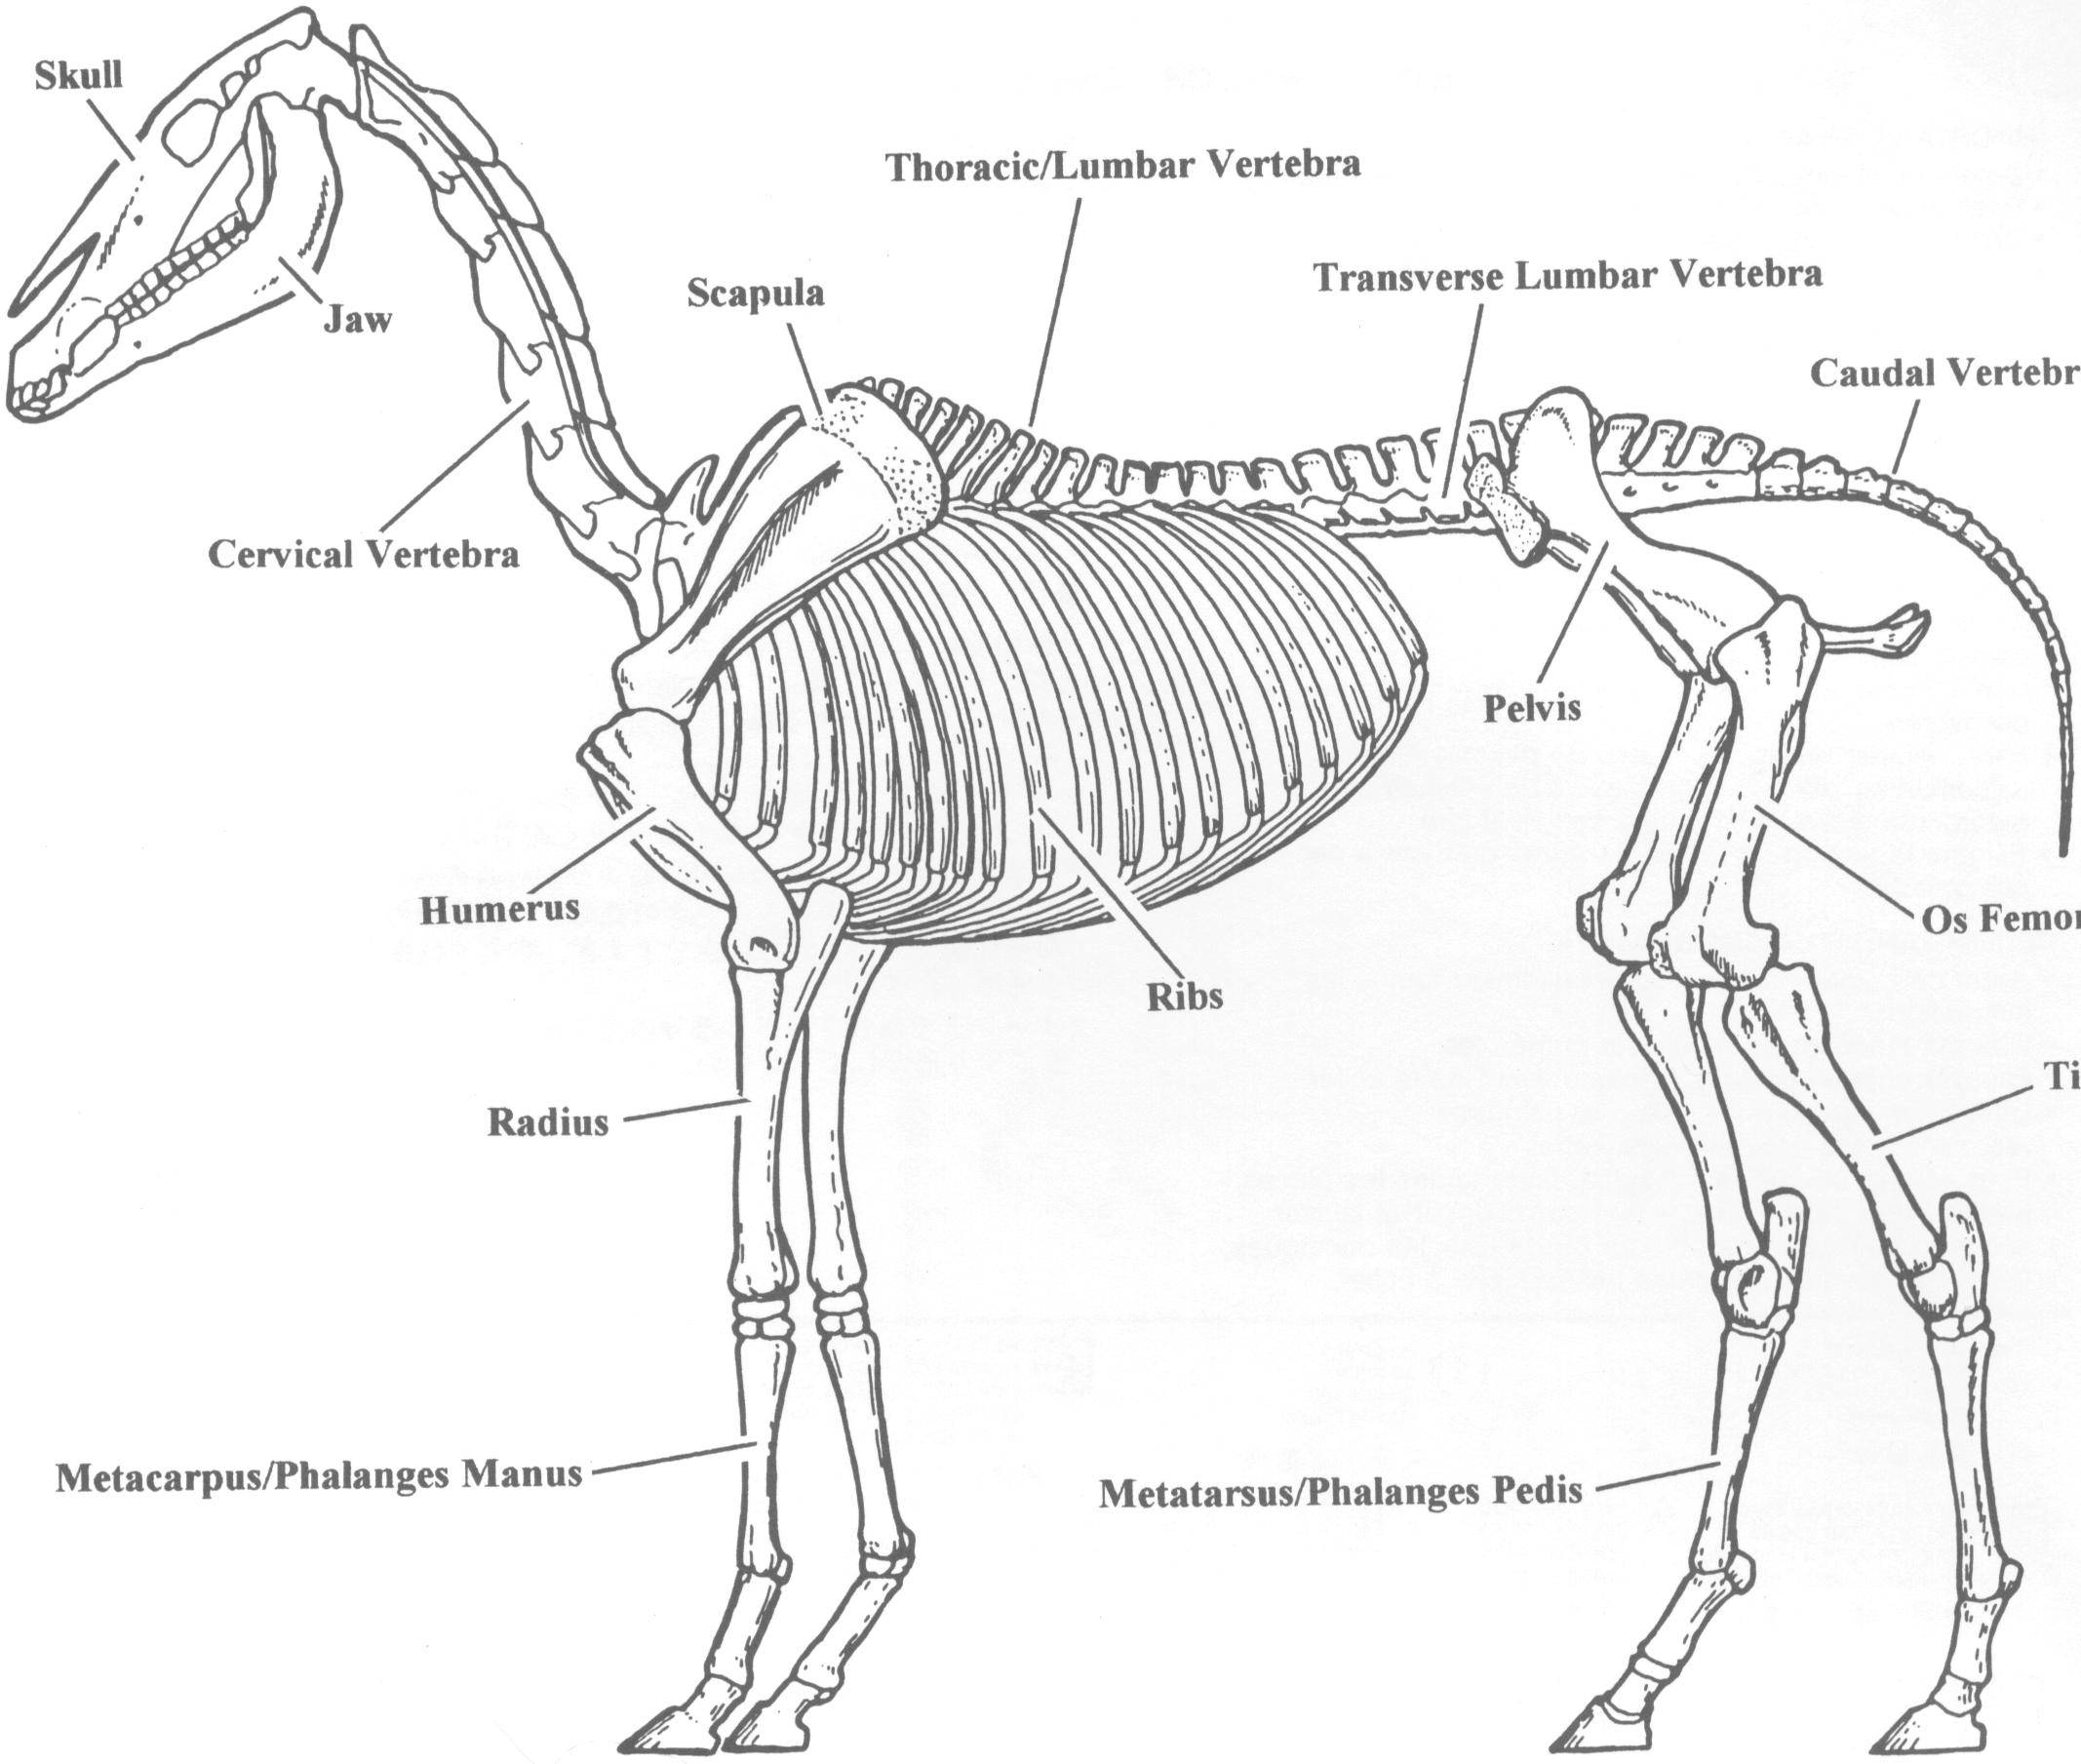 Need Horse Skeleton Plans